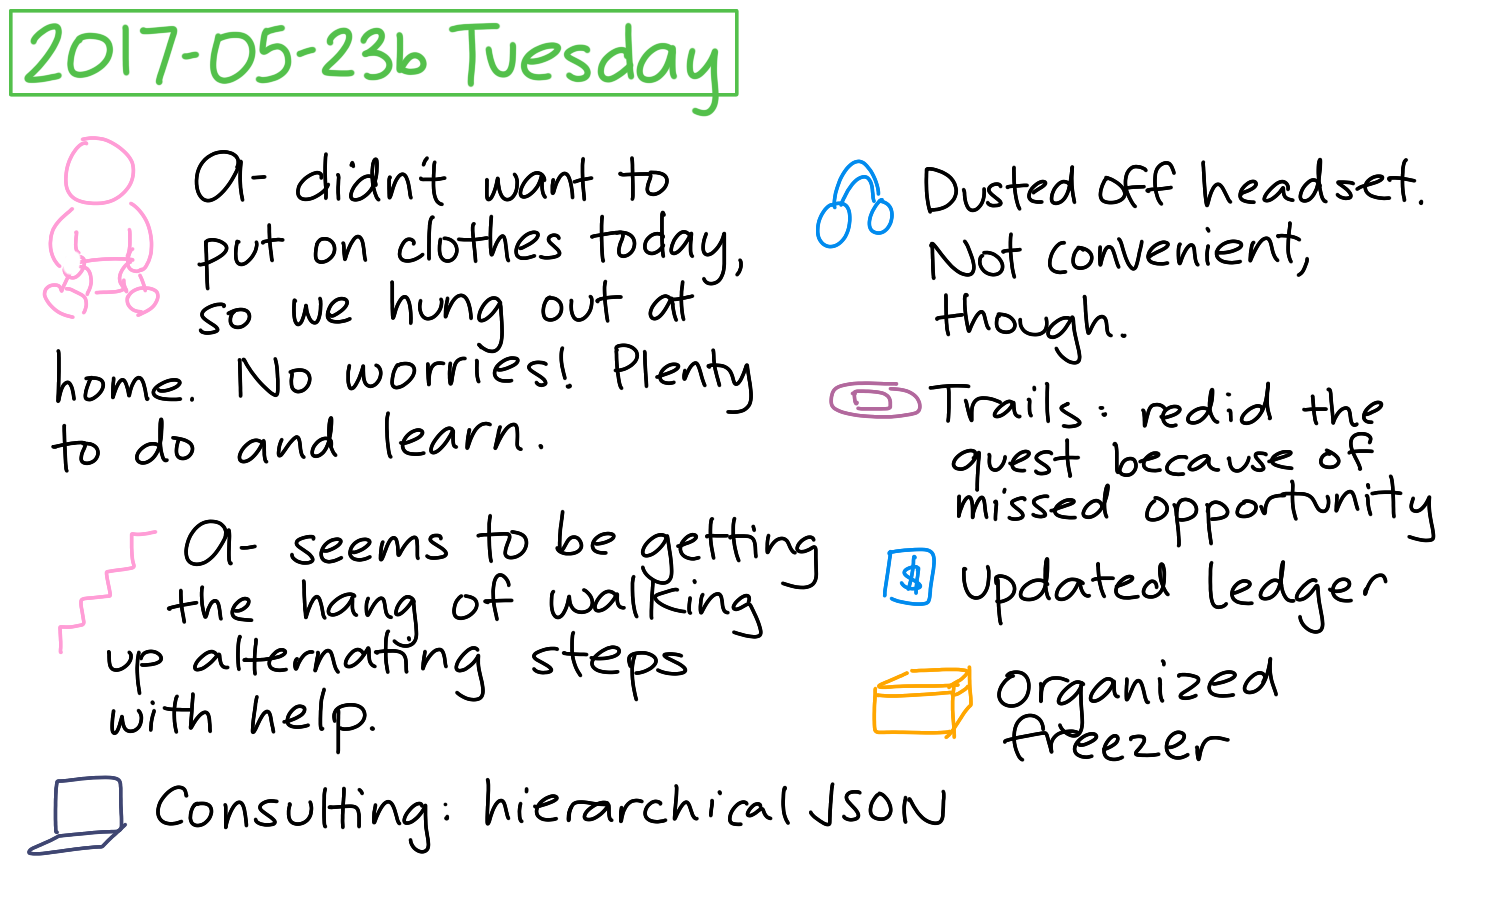 2017-05-23b Tuesday #daily #journal.png